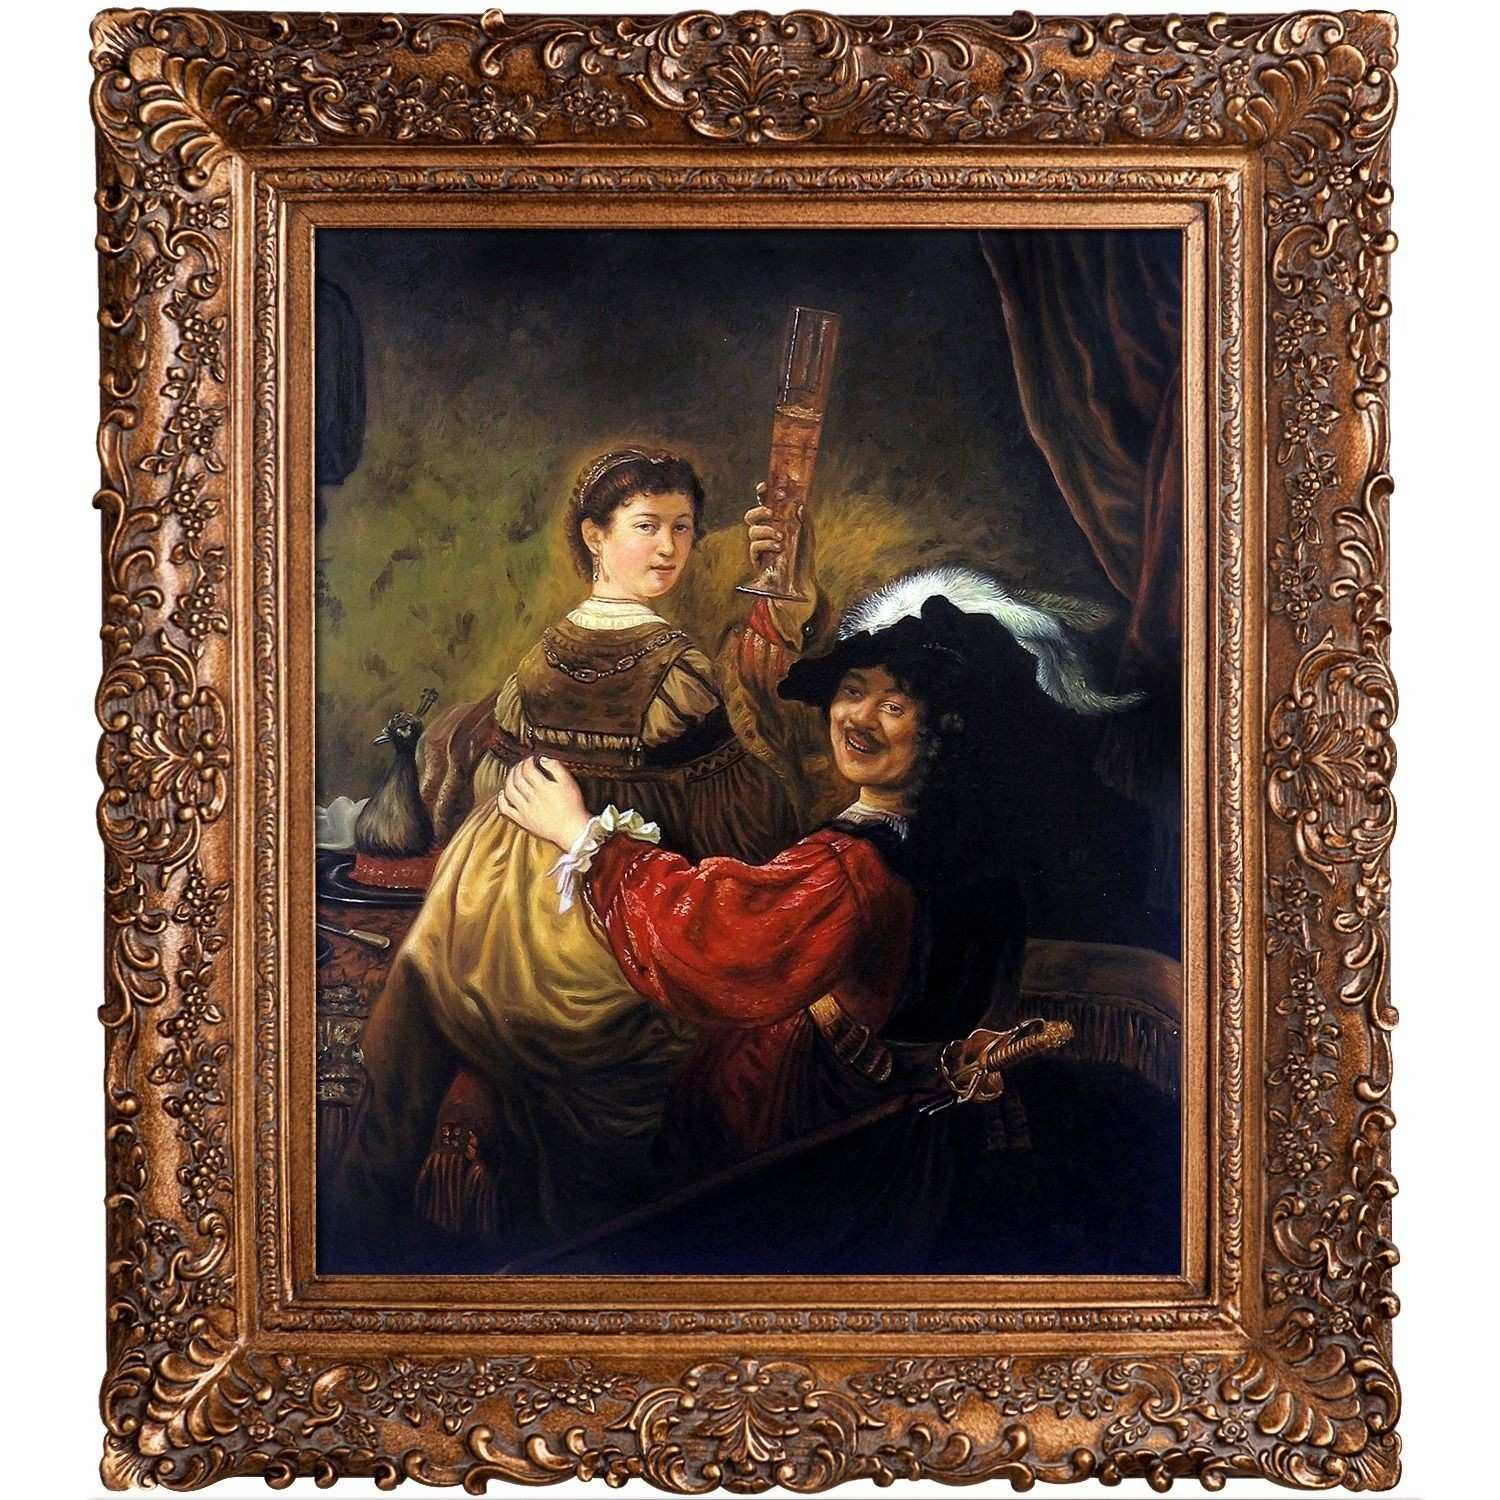 Rembrandt Harmenszoon Van Rijn Rembrandt and Saskia in the Parable